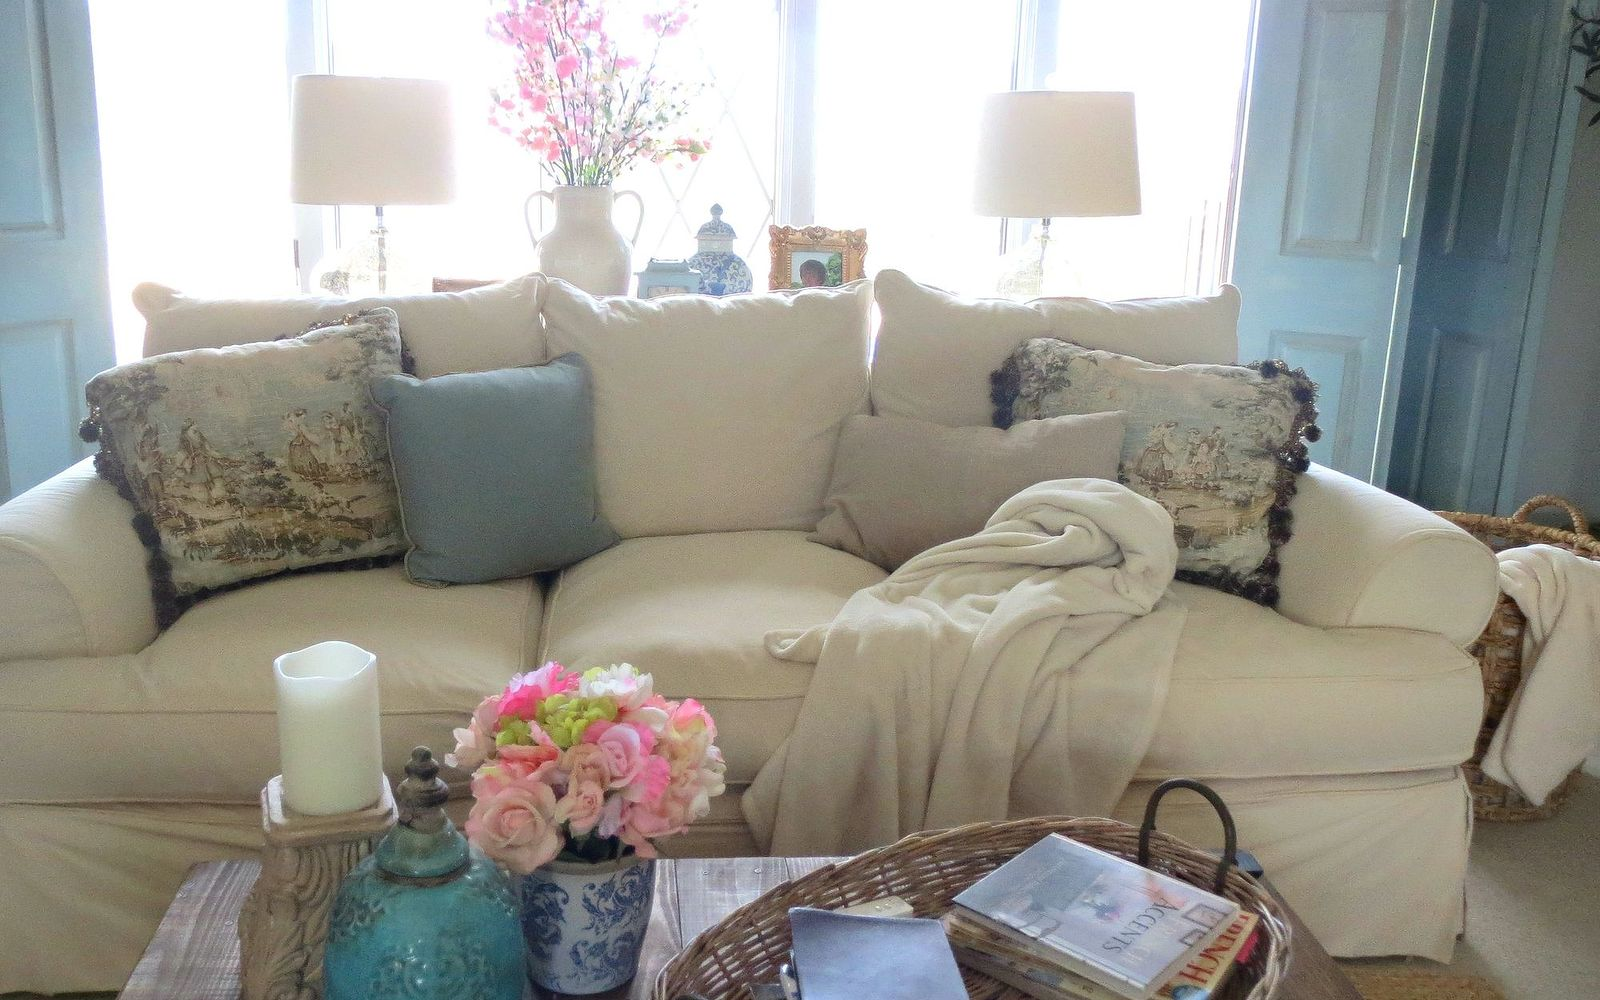 s hide your couch s wear and tear with these great ideas, Making your own slip covers